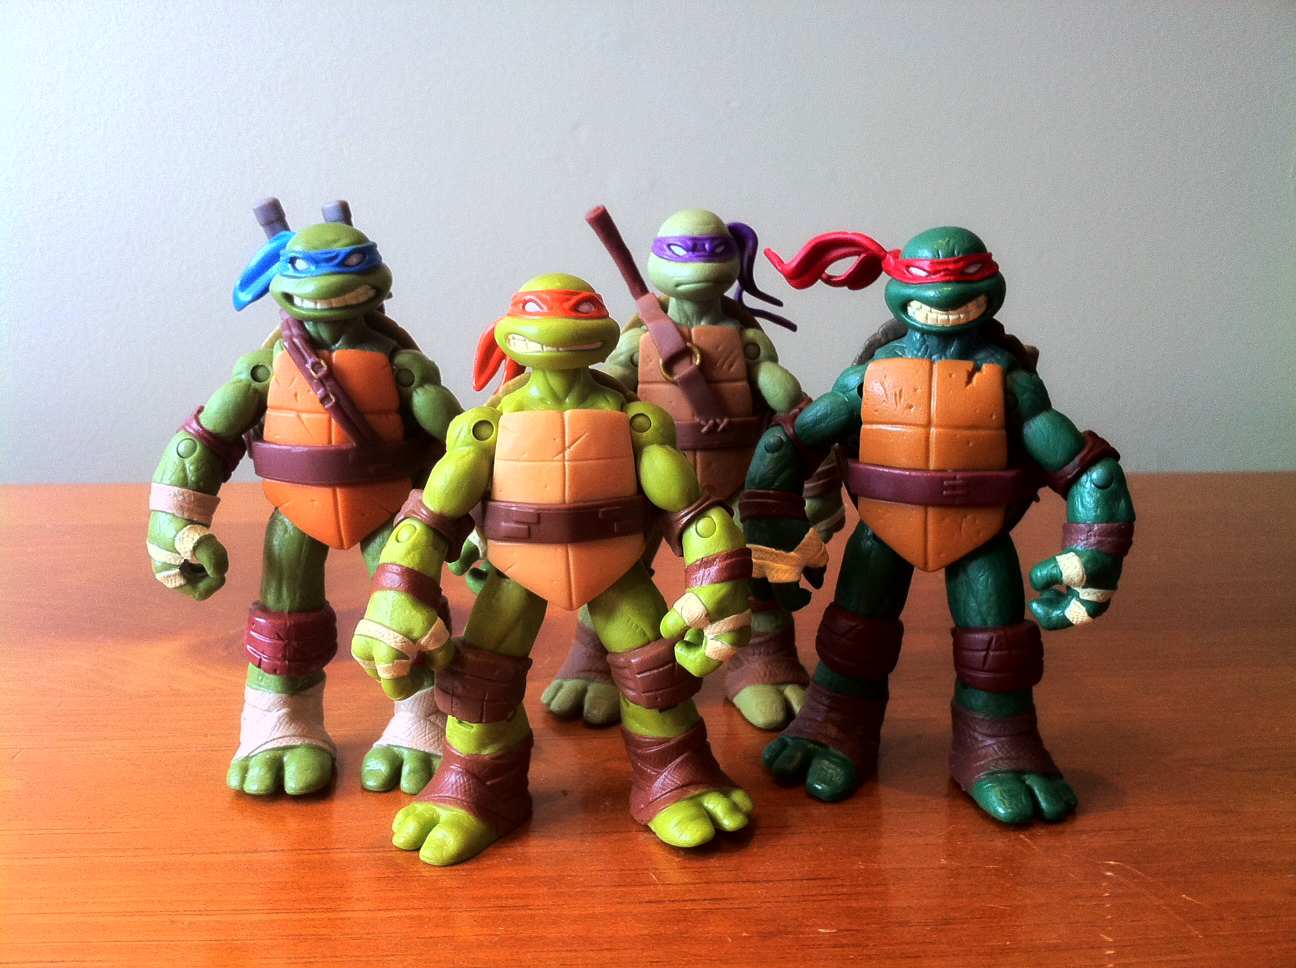 Teenage Mutant Ninja Turtles 2012 Neuralizer Toy : Unpunched teenage mutant ninja turtles